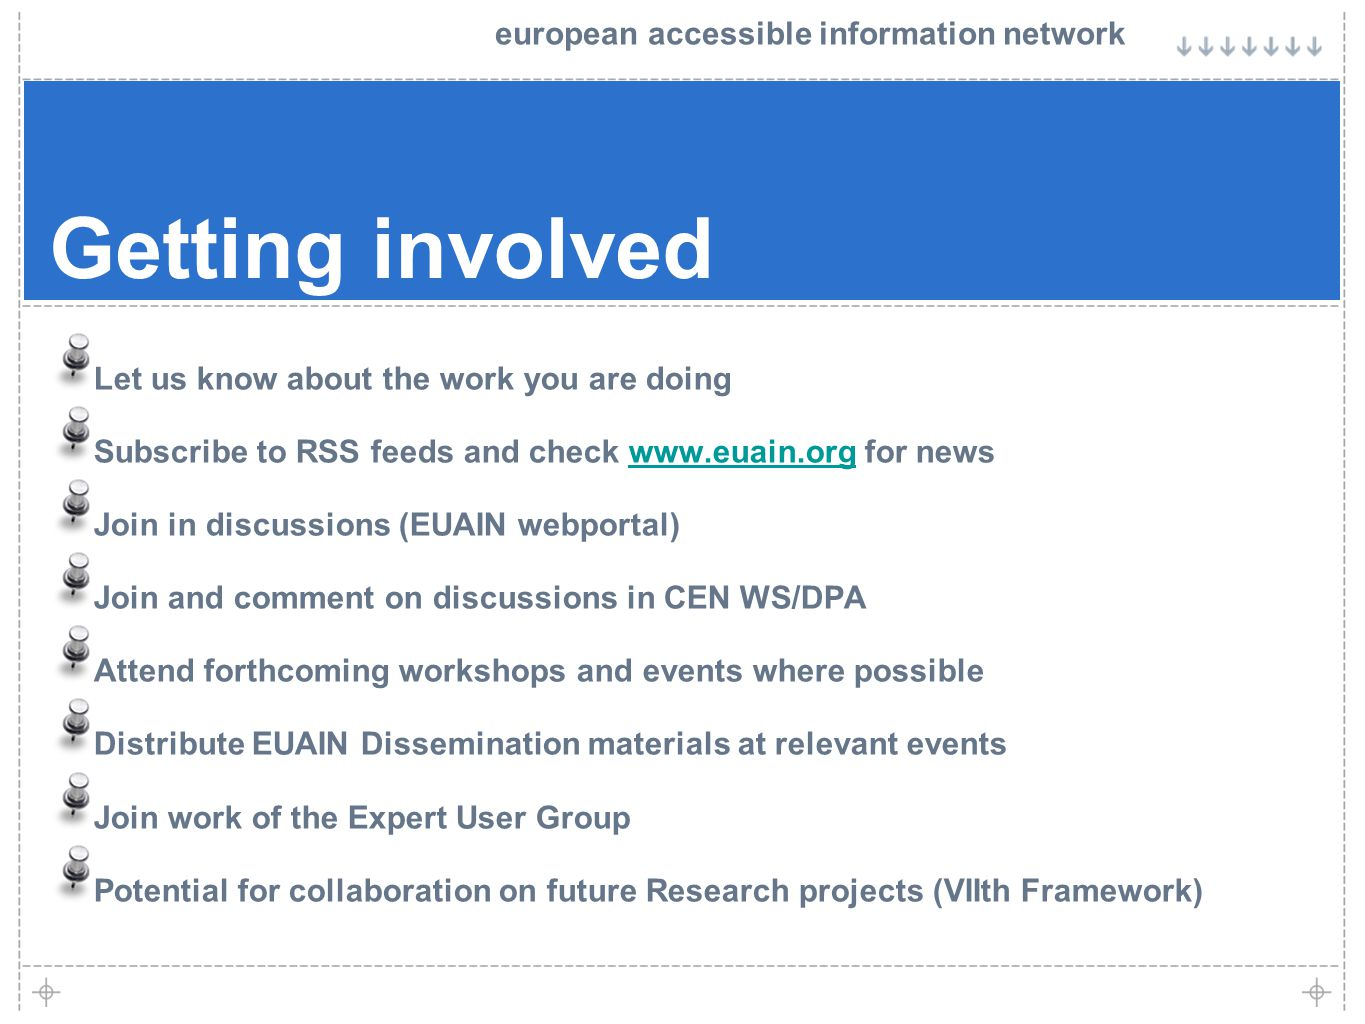 european accessible information network Getting involved Let us know about the work you are doing Subscribe to RSS feeds and check www.euain.org for newswww.euain.org Join in discussions (EUAIN webportal) Join and comment on discussions in CEN WS/DPA Attend forthcoming workshops and events where possible Distribute EUAIN Dissemination materials at relevant events Join work of the Expert User Group Potential for collaboration on future Research projects (VIIth Framework)